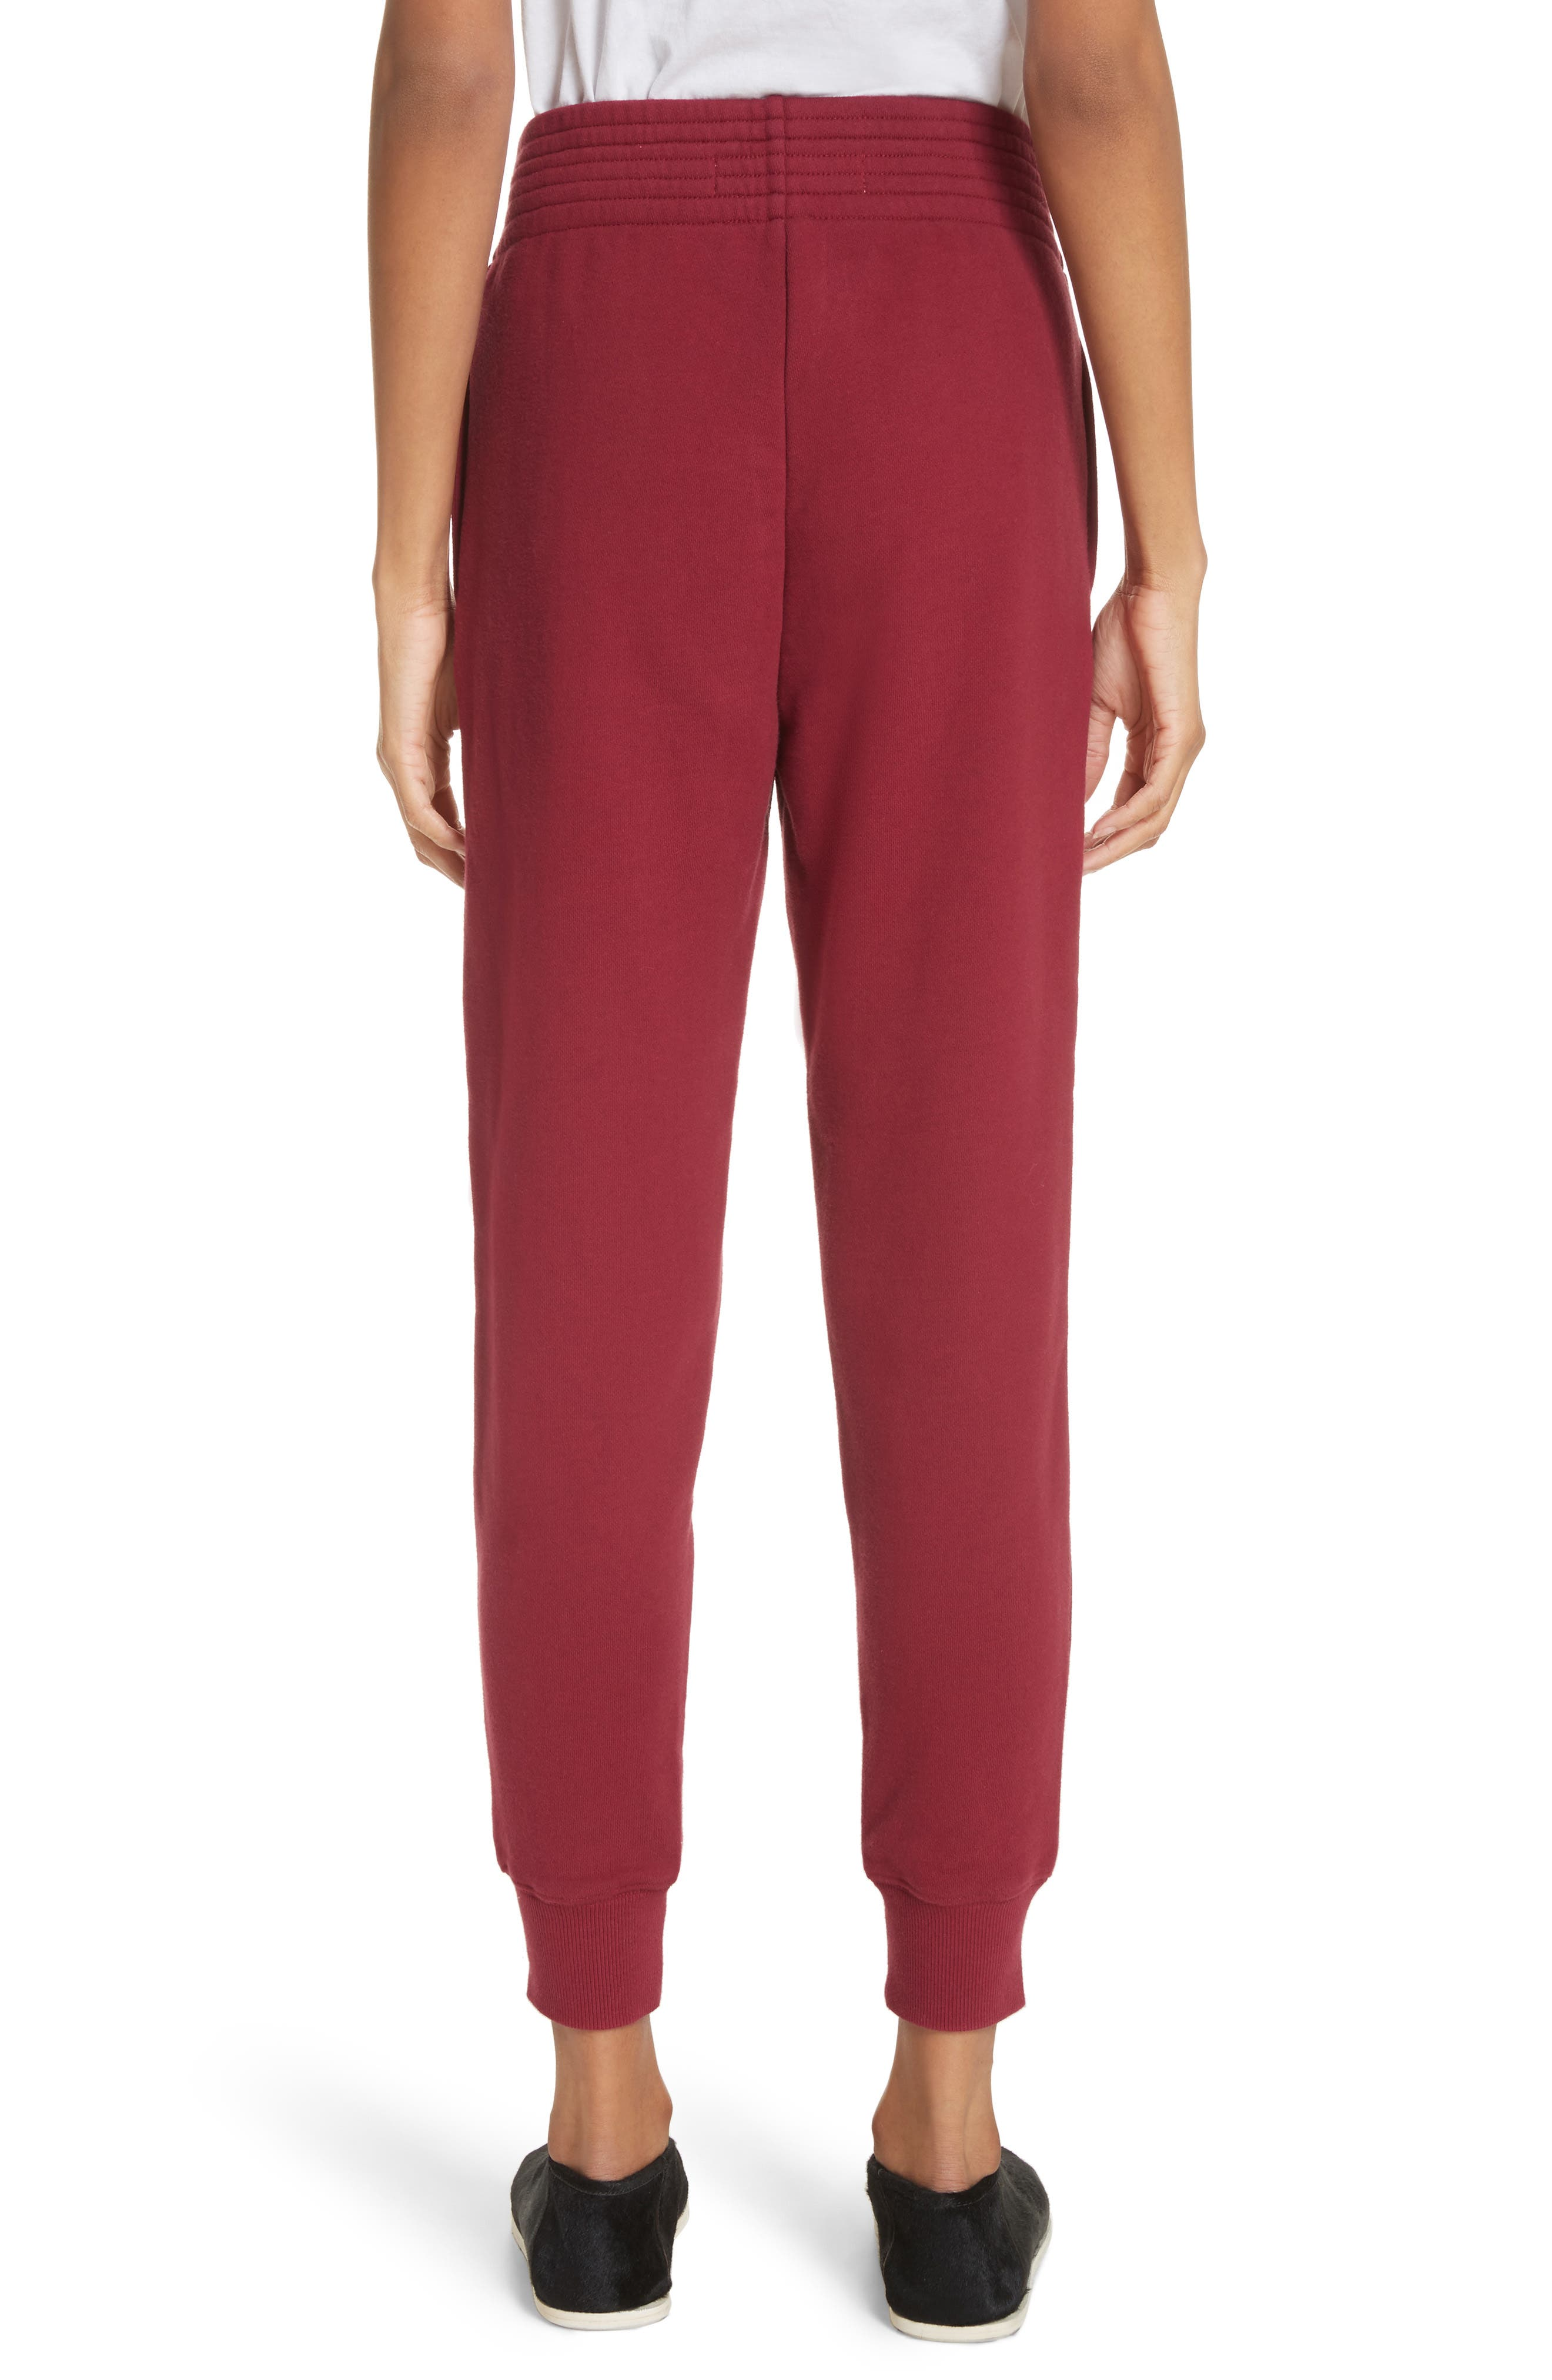 PSWL Sweatpants,                             Alternate thumbnail 2, color,                             Burgundy